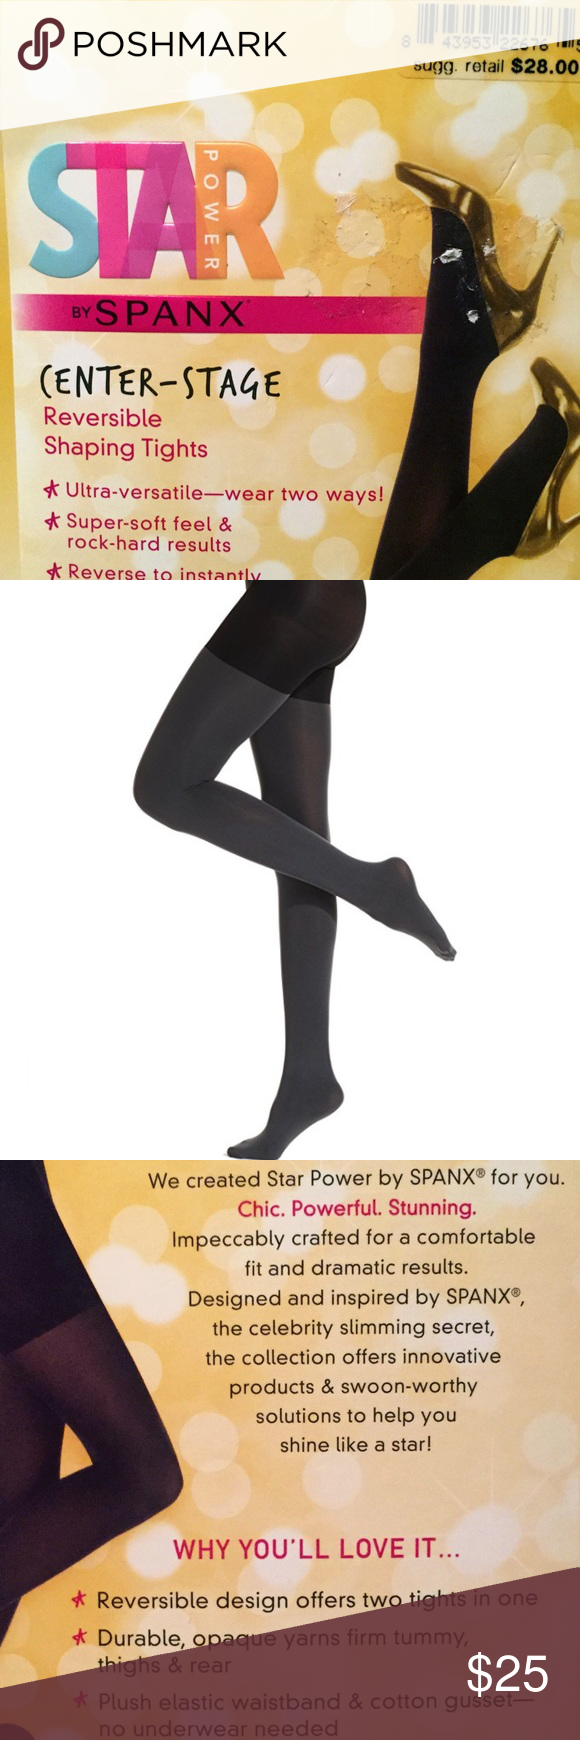 f0cf04e4181 Star Power by SPANX Center-Stage Shaping Tights Star Power by SPANX  Center-Stage